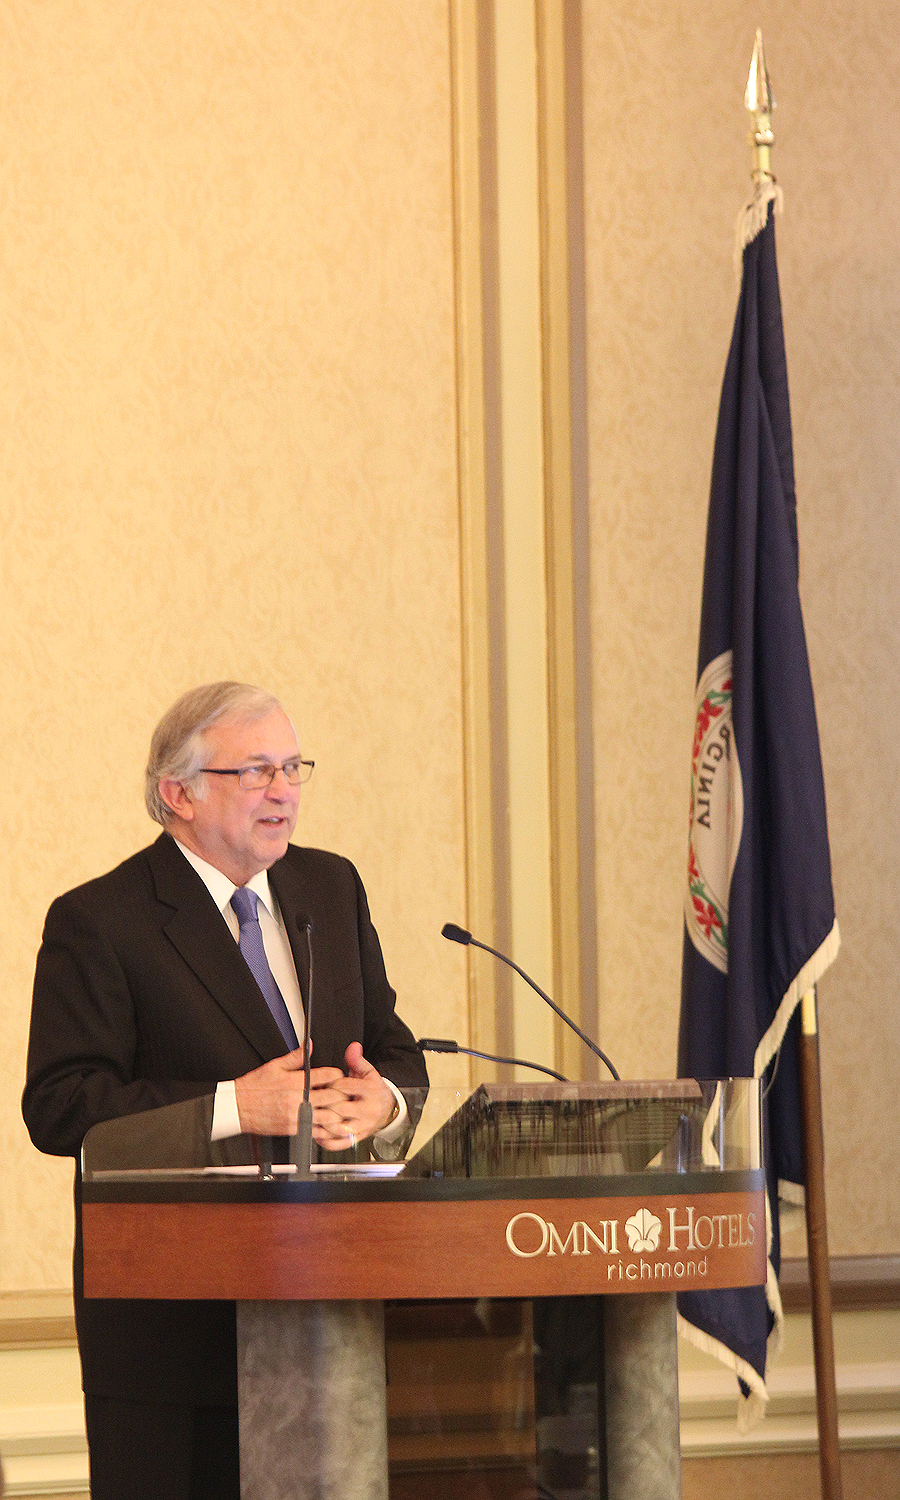 Virginia Tech President Charles W. Steger gives a speech at the recent Governor's Conference on Agricultural Trade.